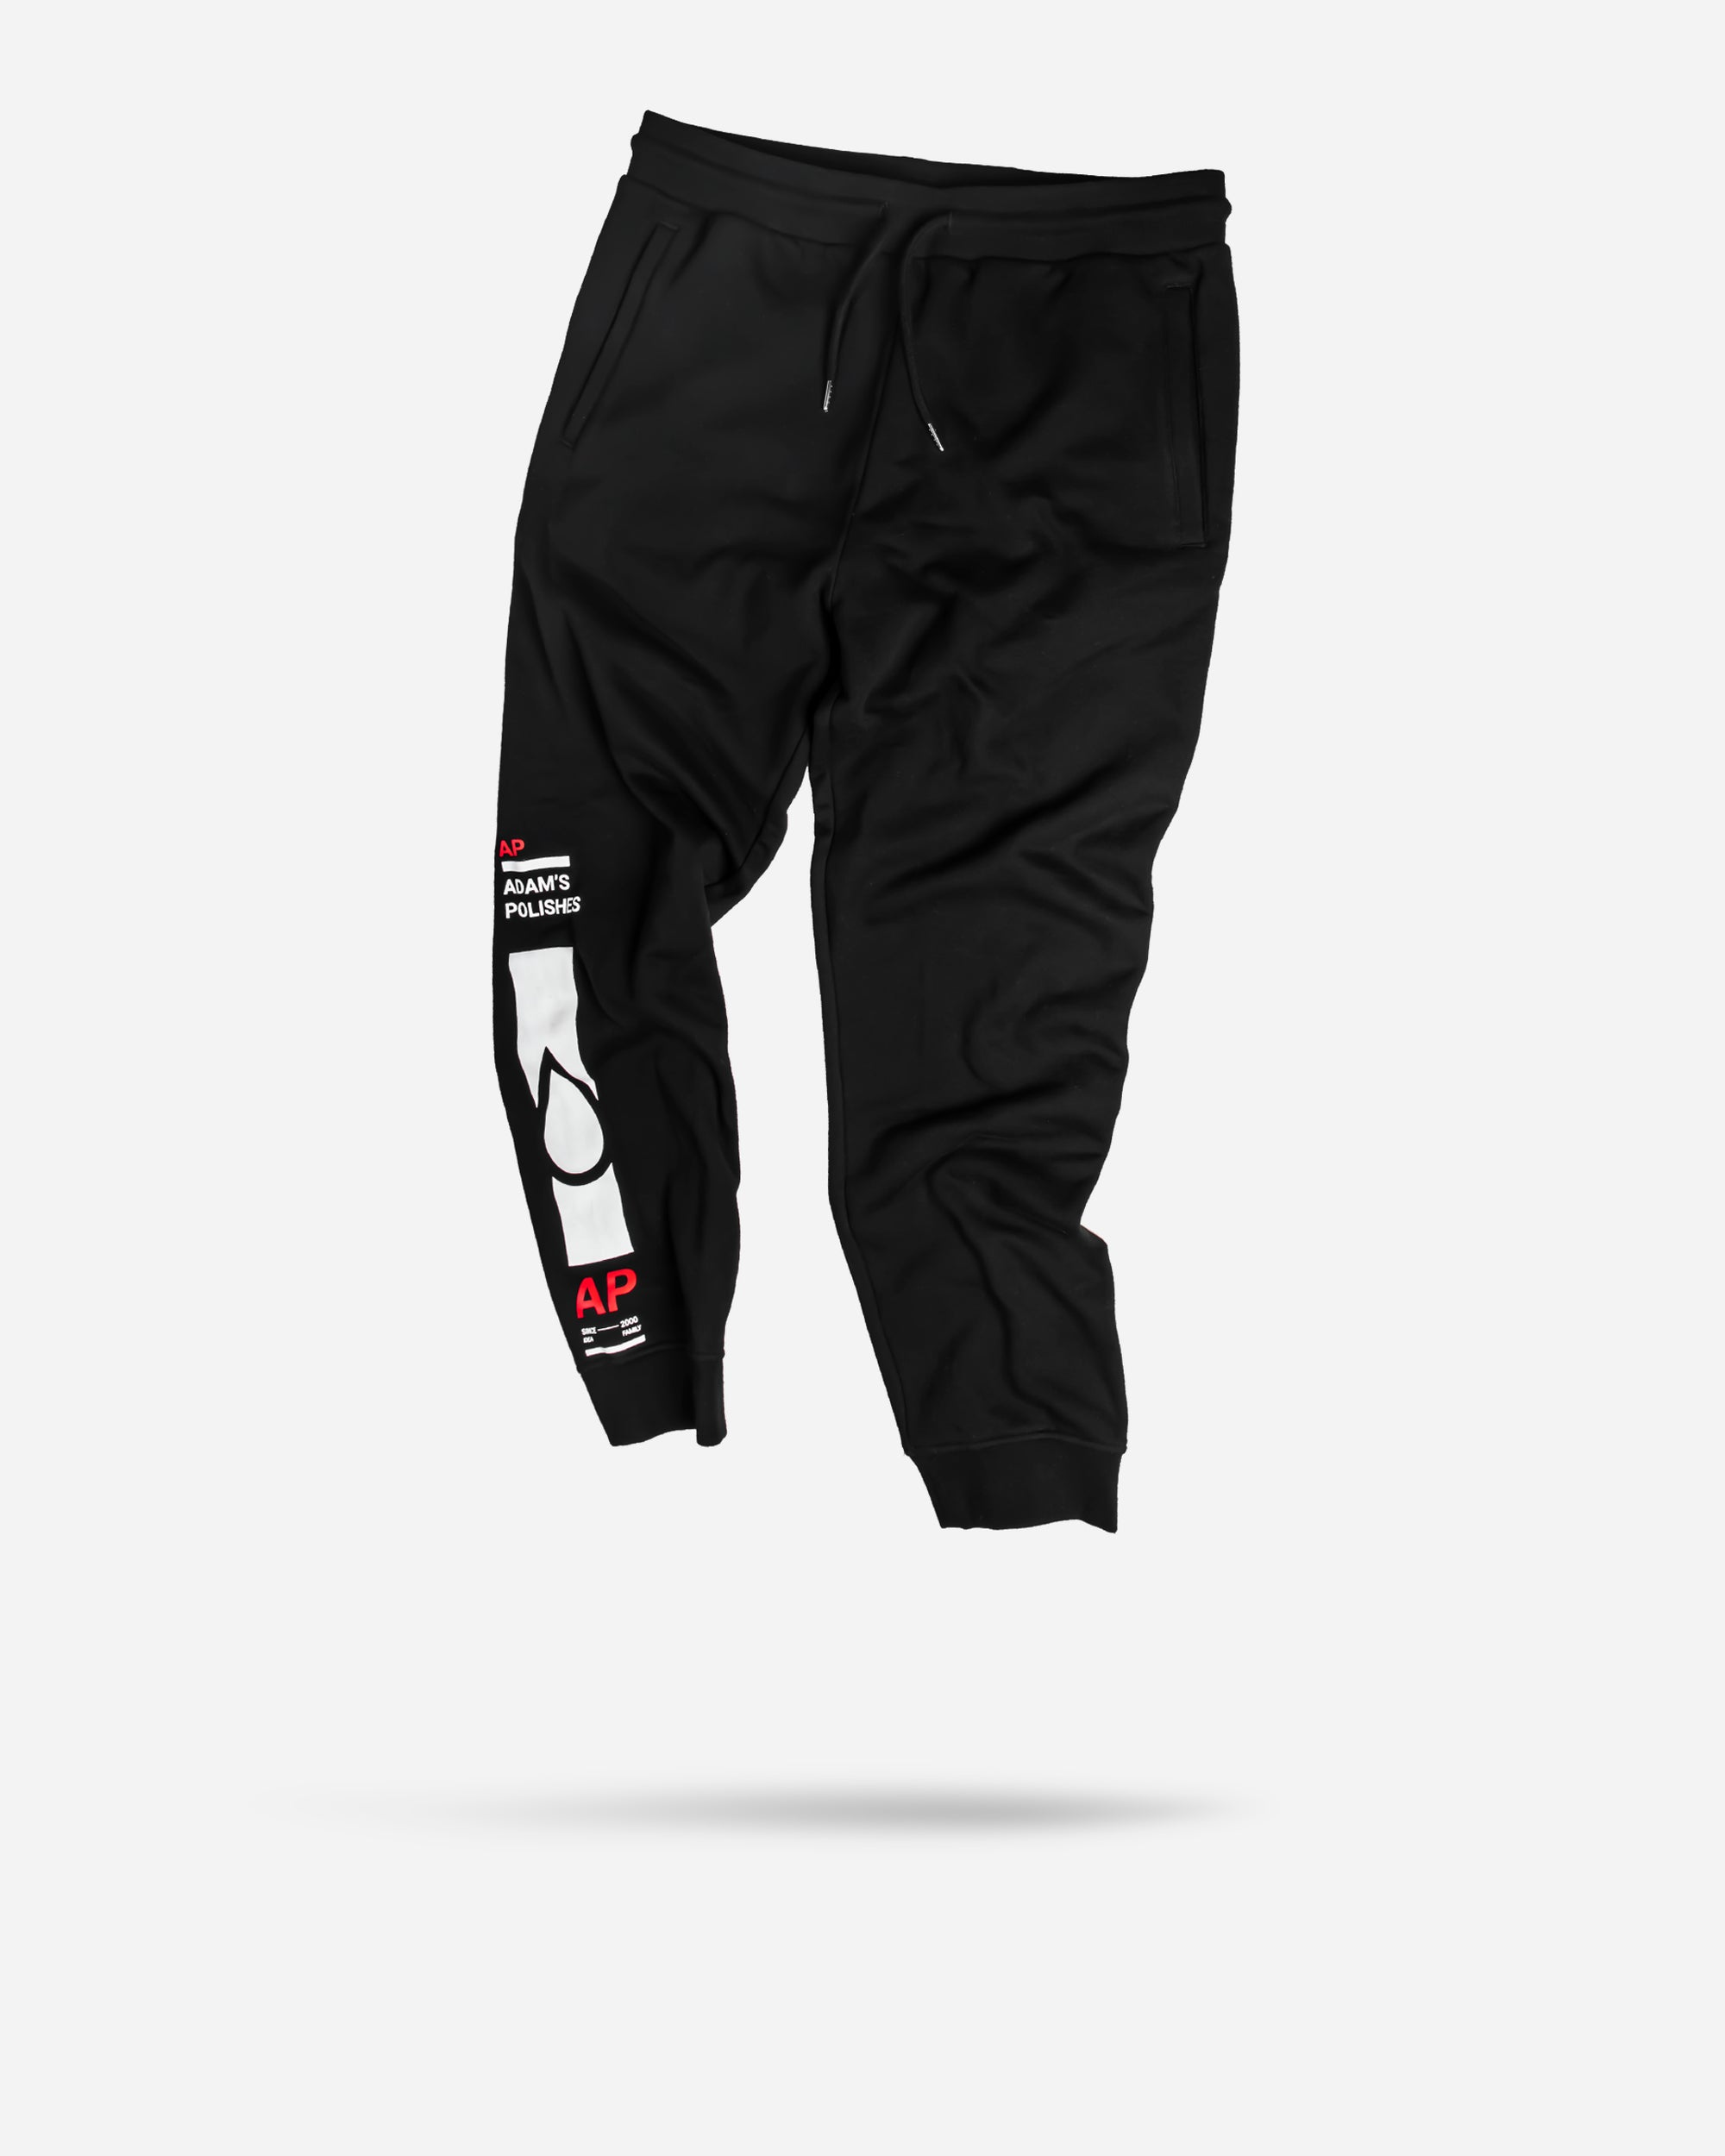 Adam's Culture Sweatpants